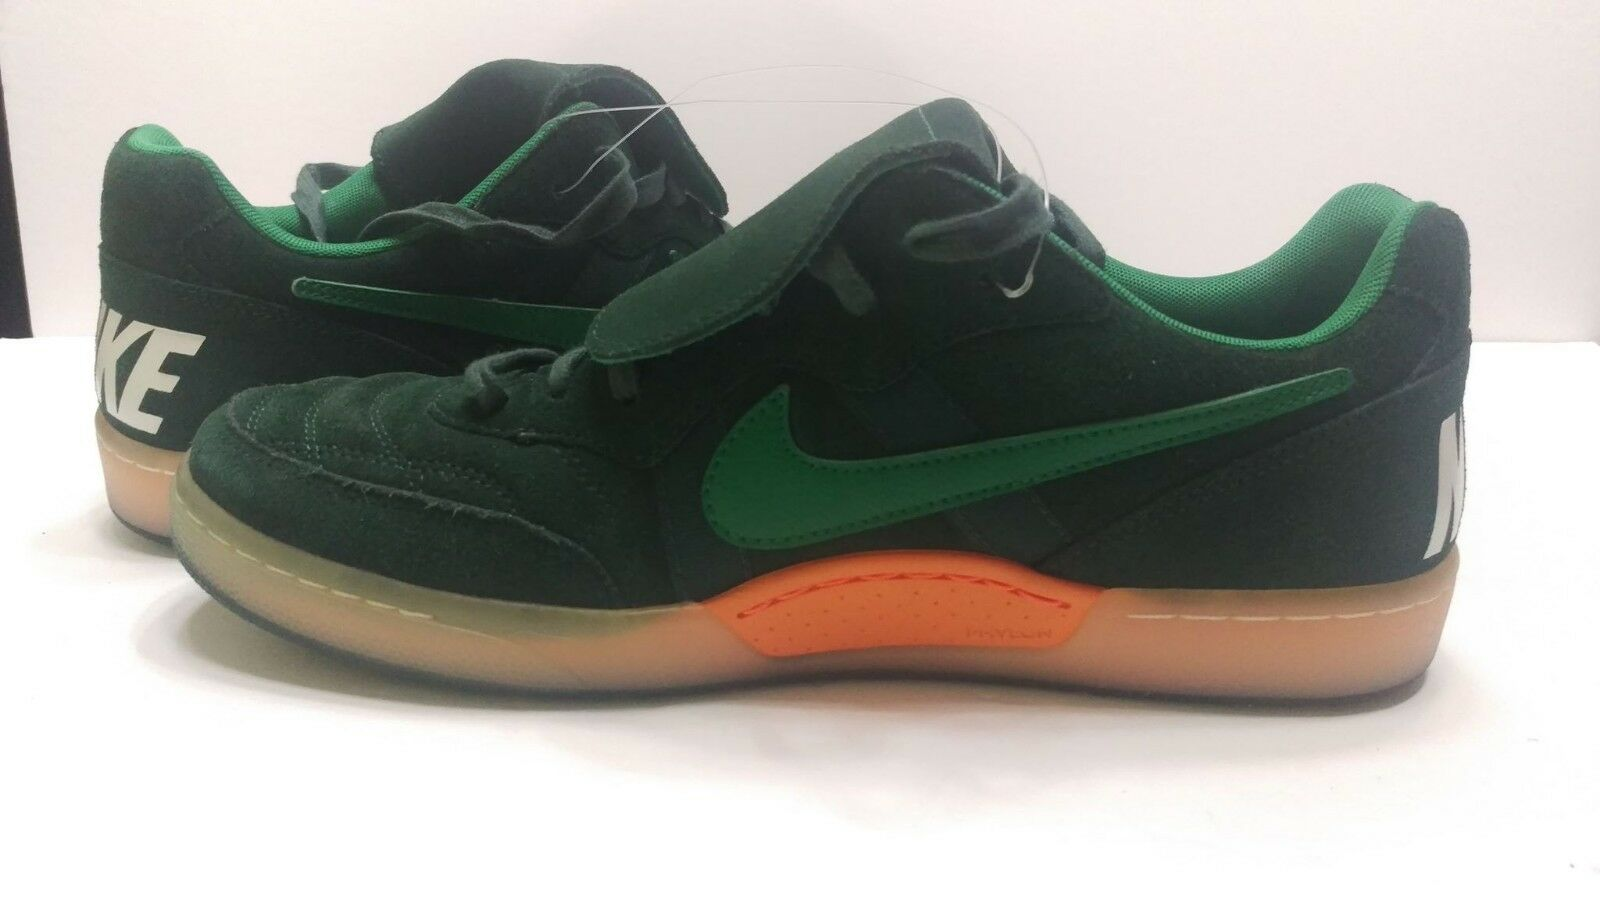 NIKE NSW TIEMPO 94 PREMIER 631689-338 Soccer shoes Size 11.5 US 45.5 EUR Green